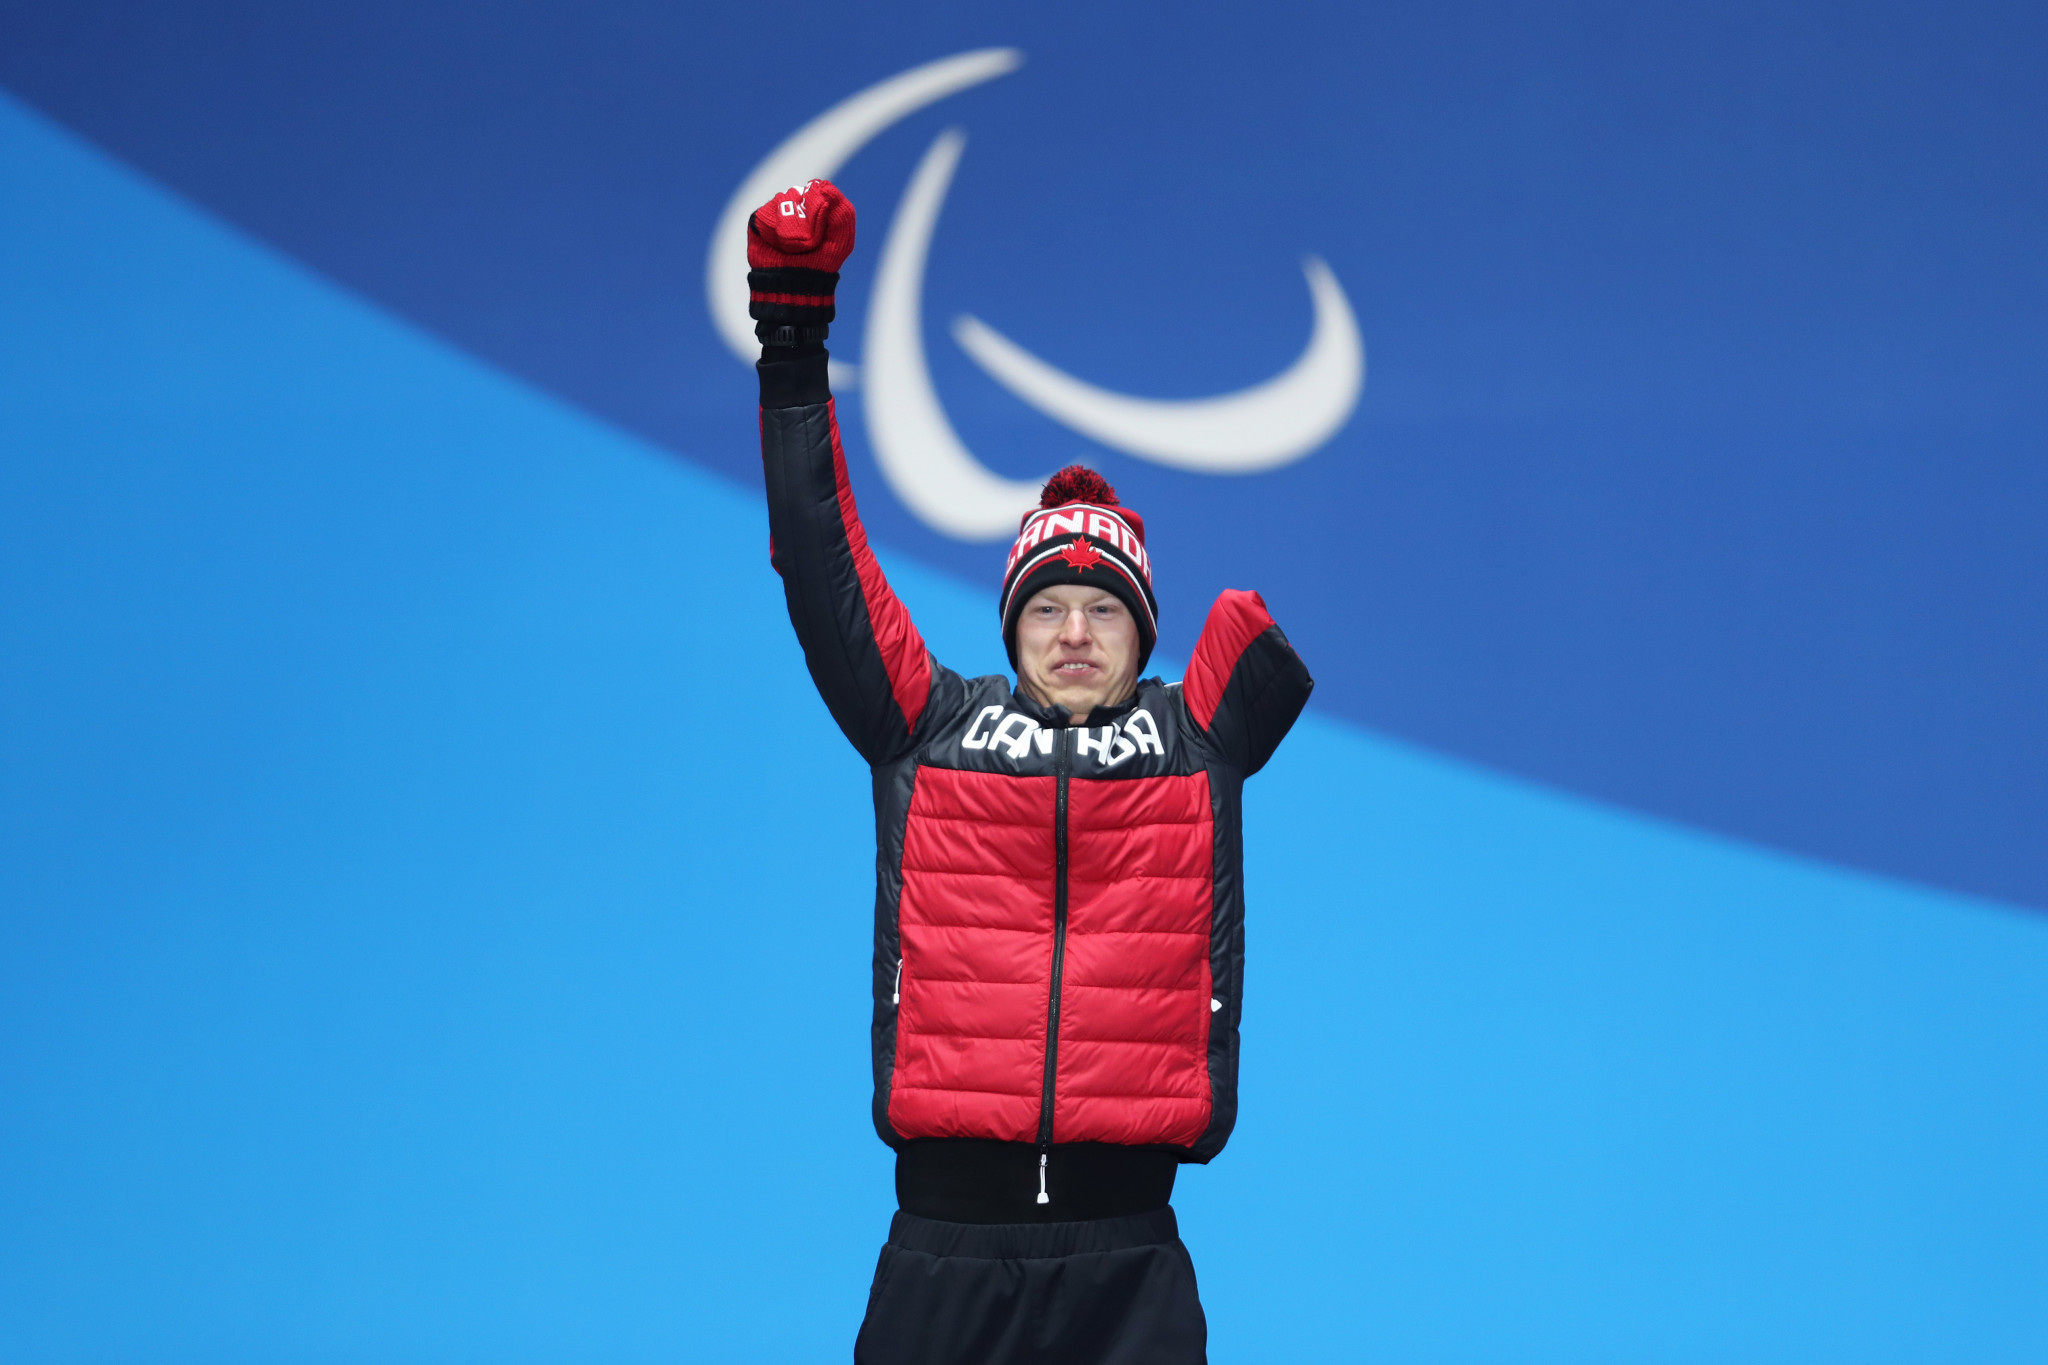 Canada's Mark Arendz, who won six medals at the 2018 Pyeongchang Winter Games, has spoken of his excitement for the upcoming season ©Getty Images